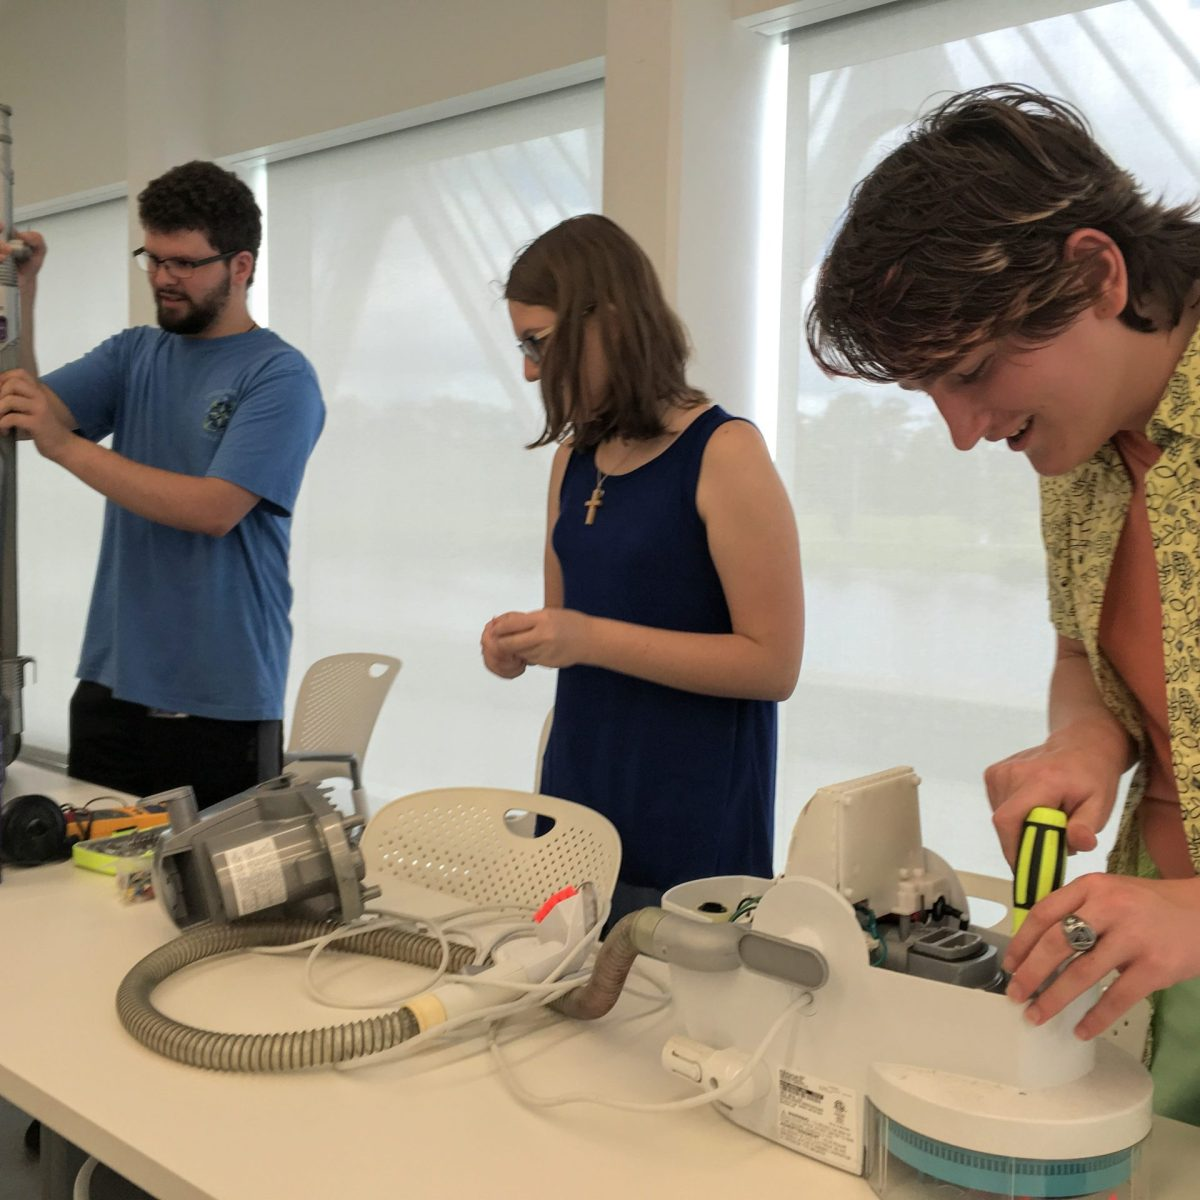 Students disassembling a vacuum cleaner at Purple Fire Hacks